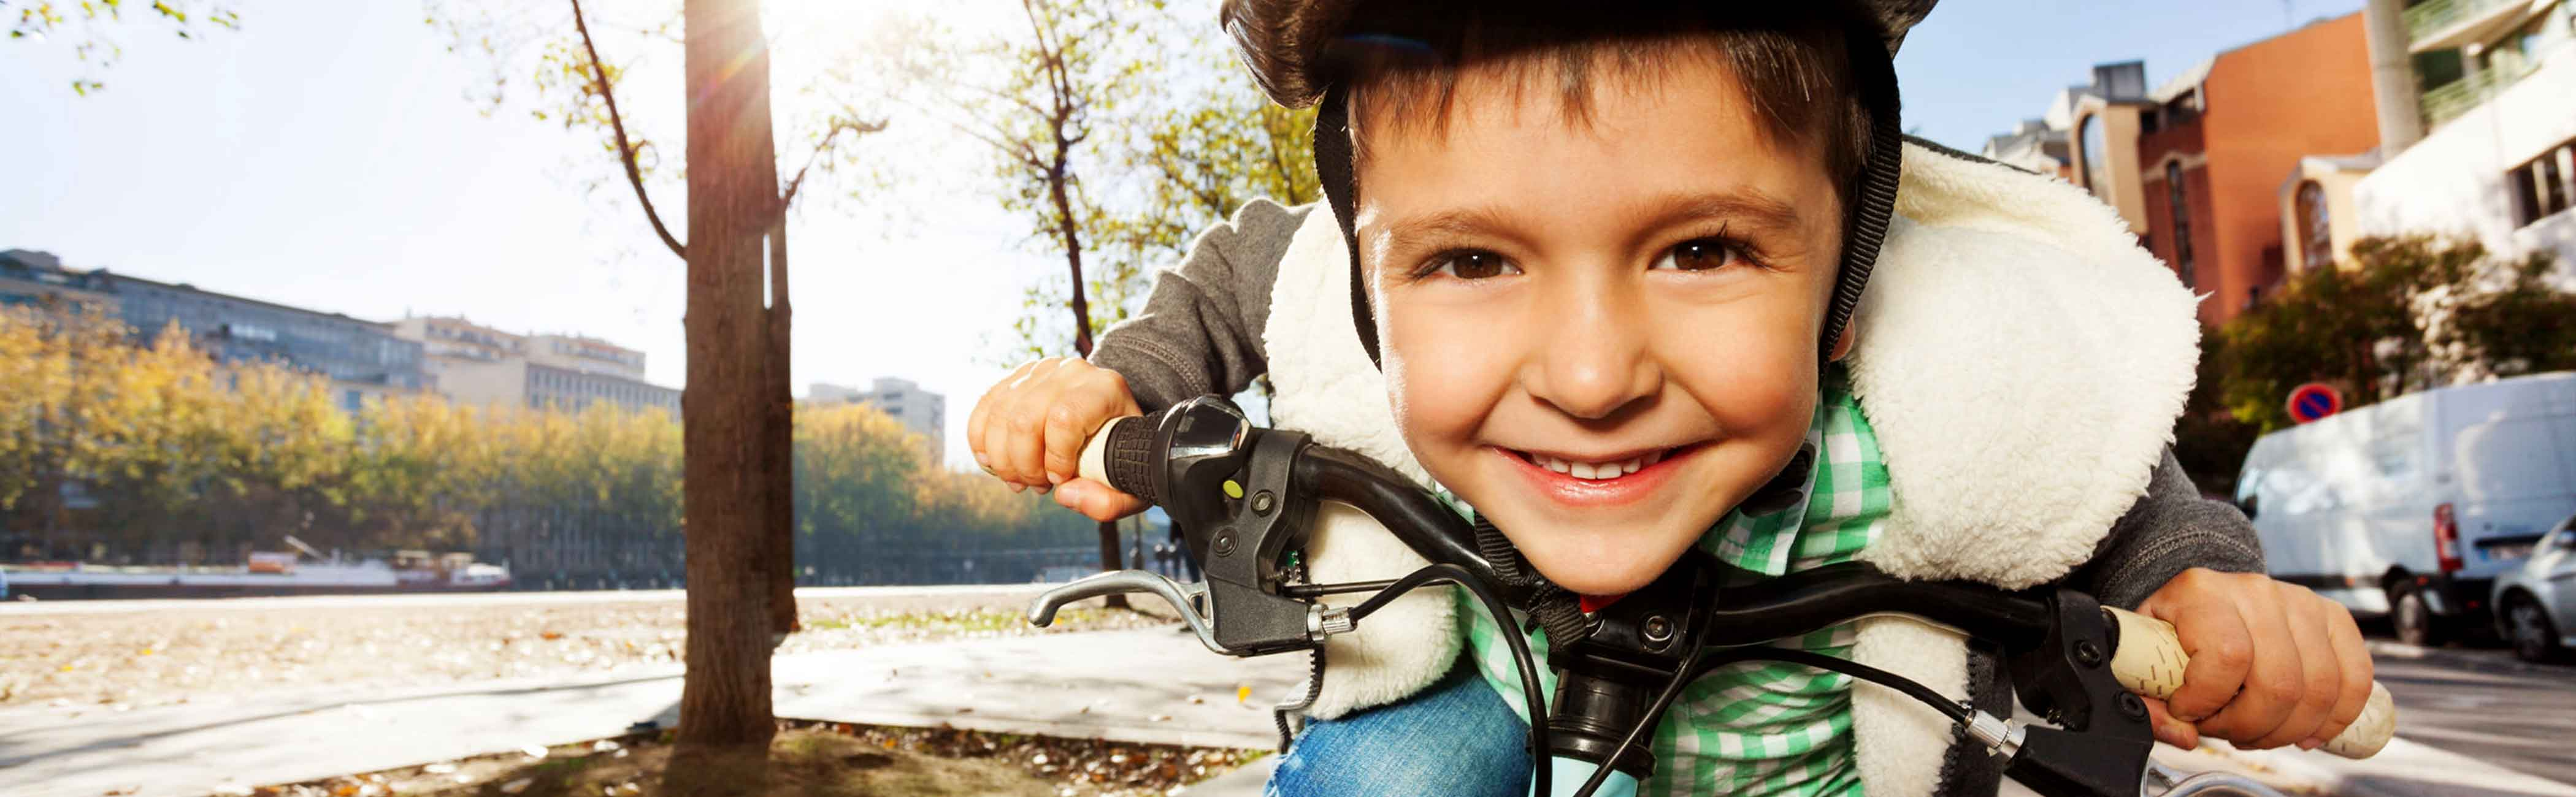 A young boy smiling as he zooms on his bike.